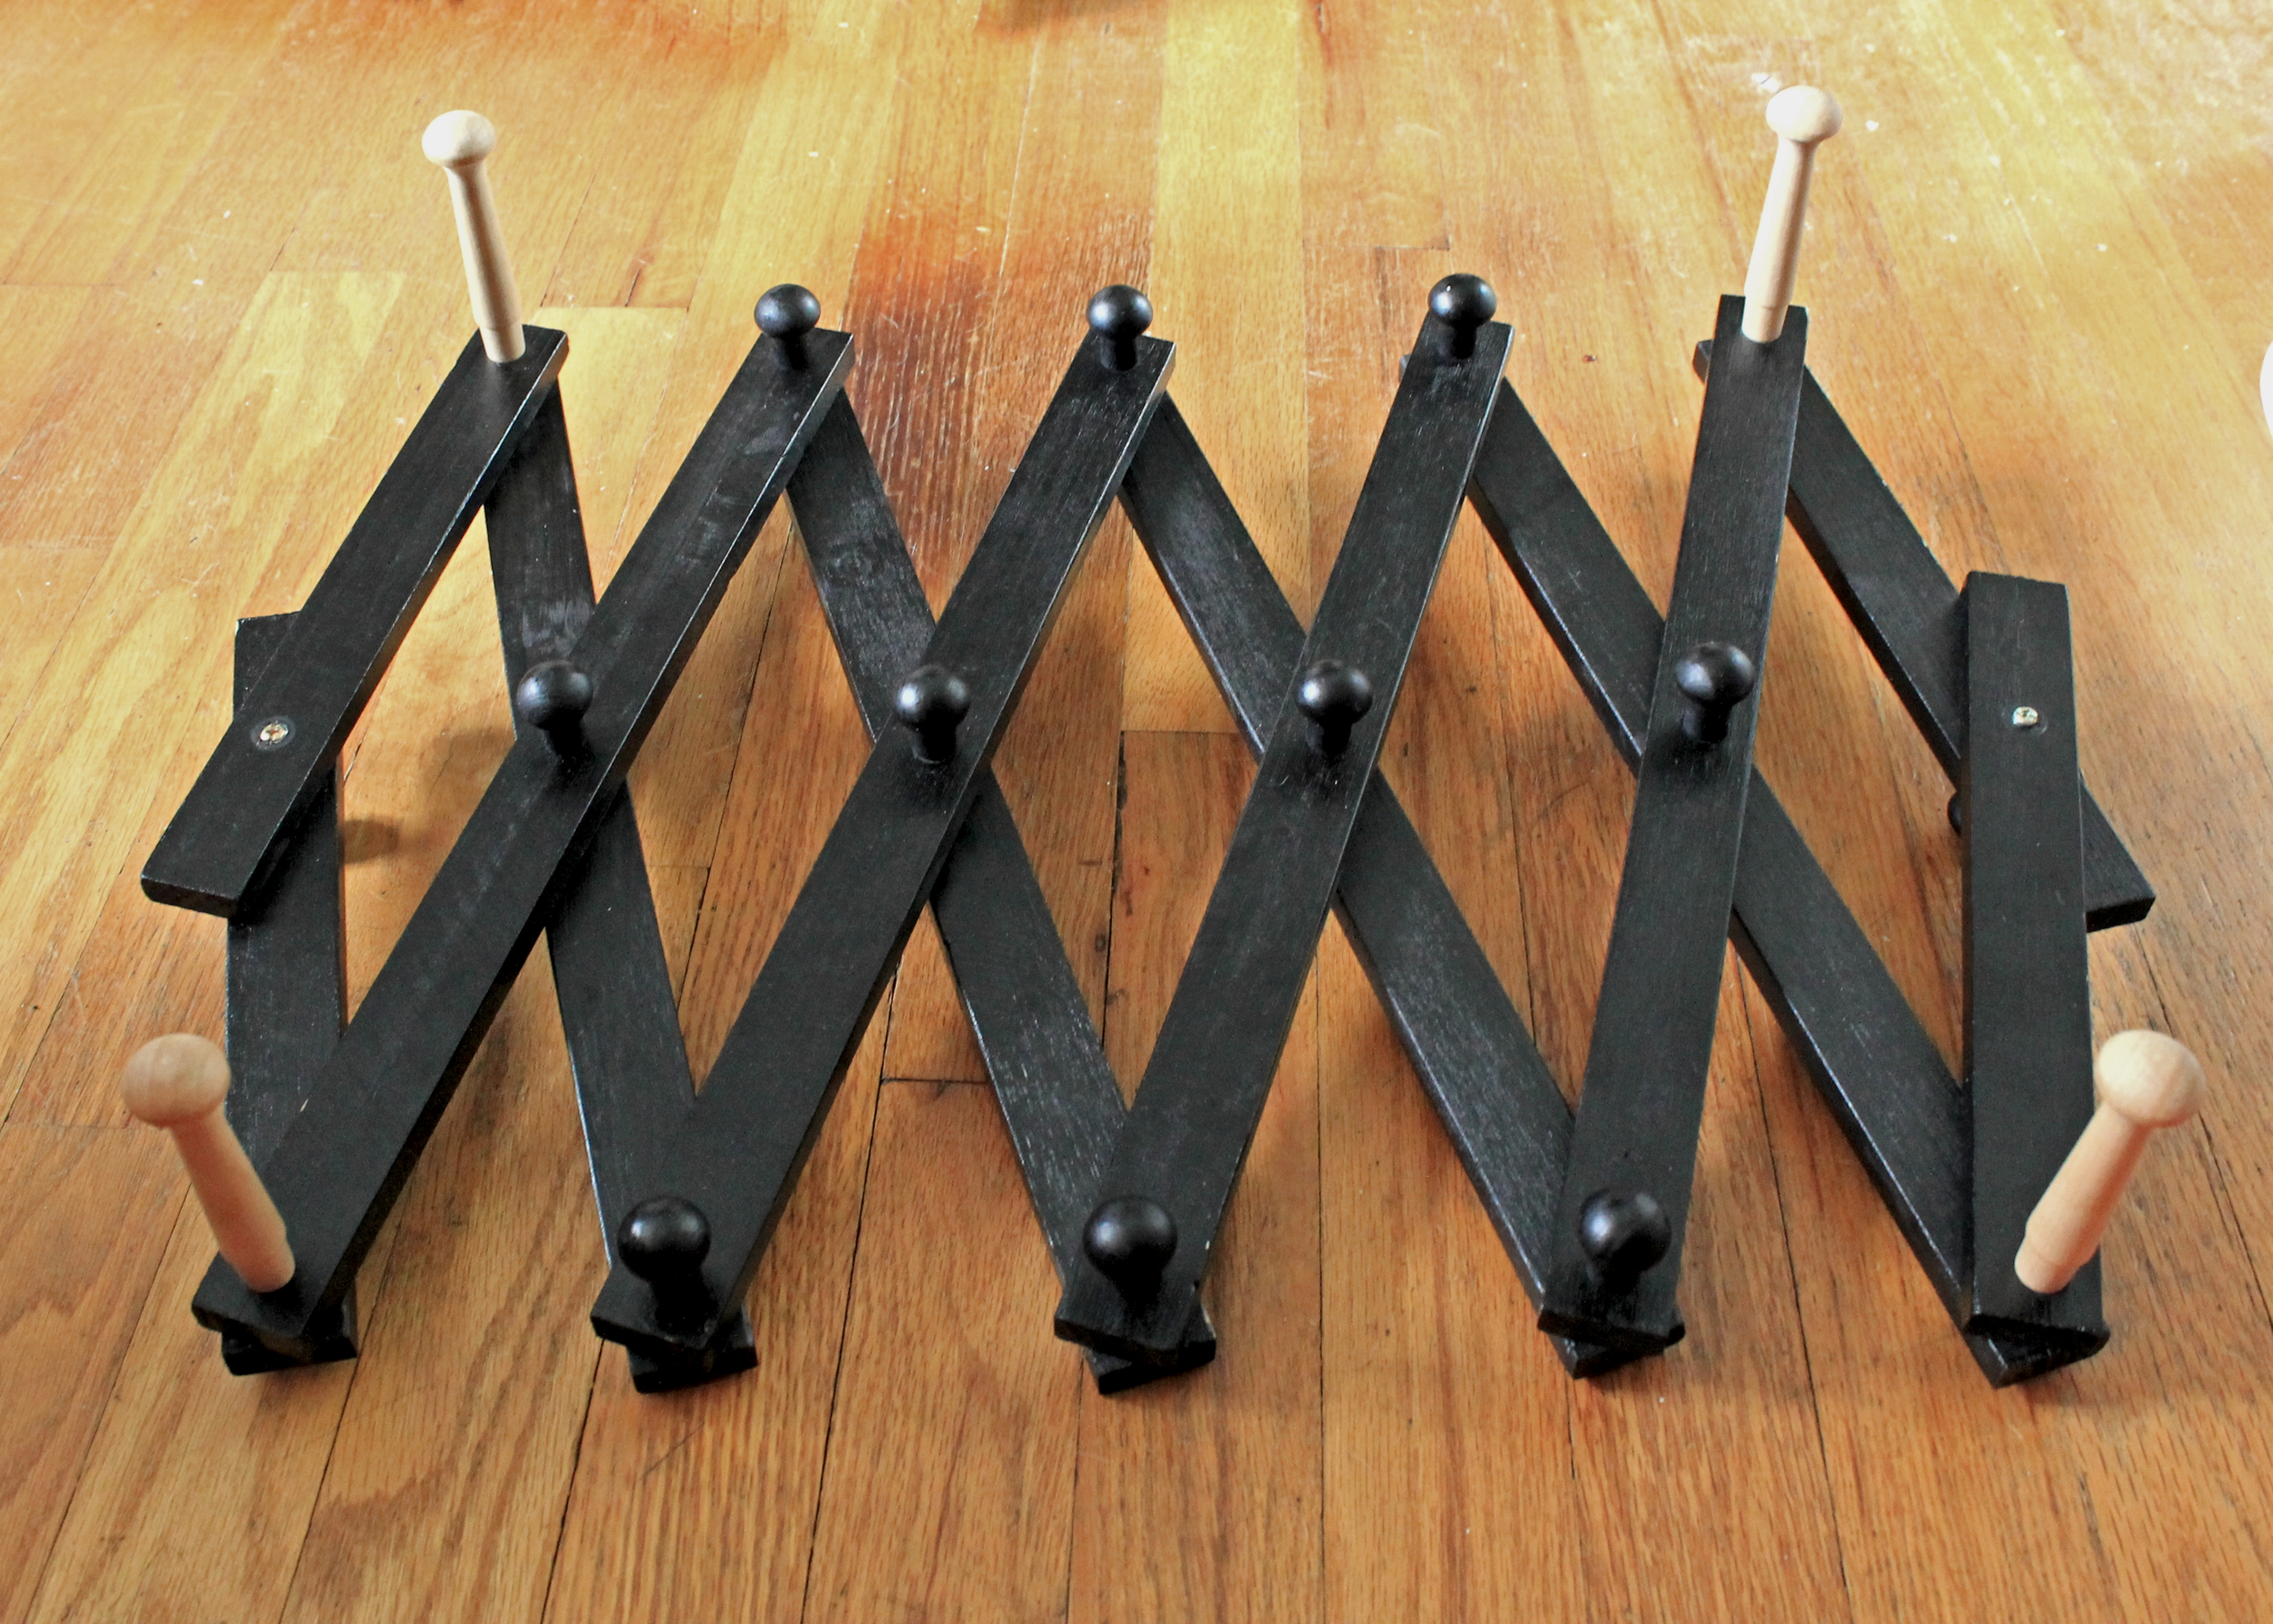 Shoe rack with 4 long wooden pegs (part of a DIY yarn swift)